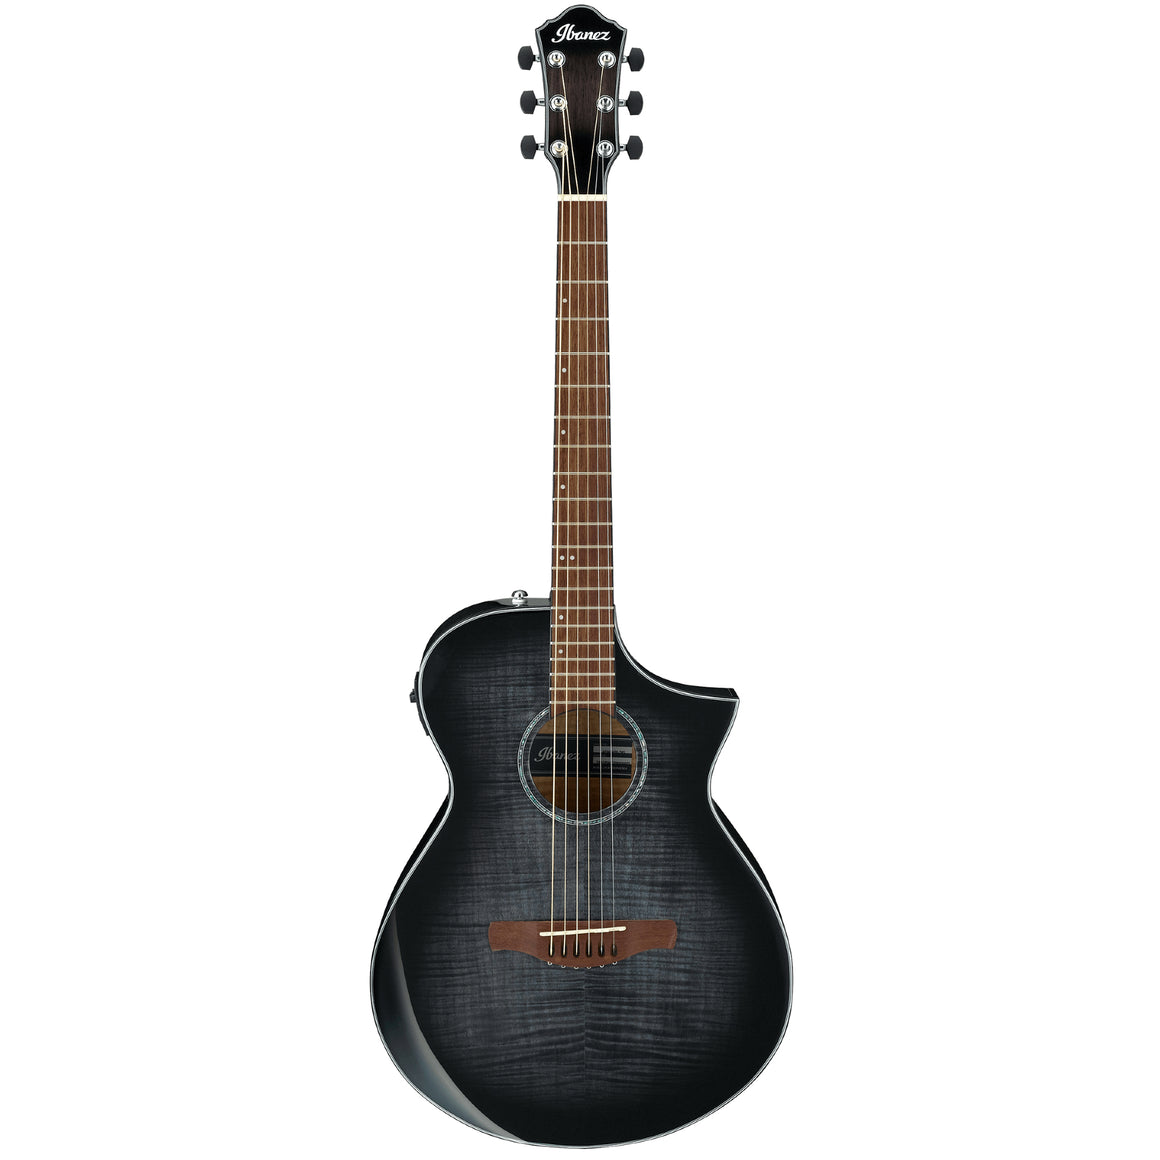 Ibanez AEWC Acoustic Electric Guitar - Trans Black